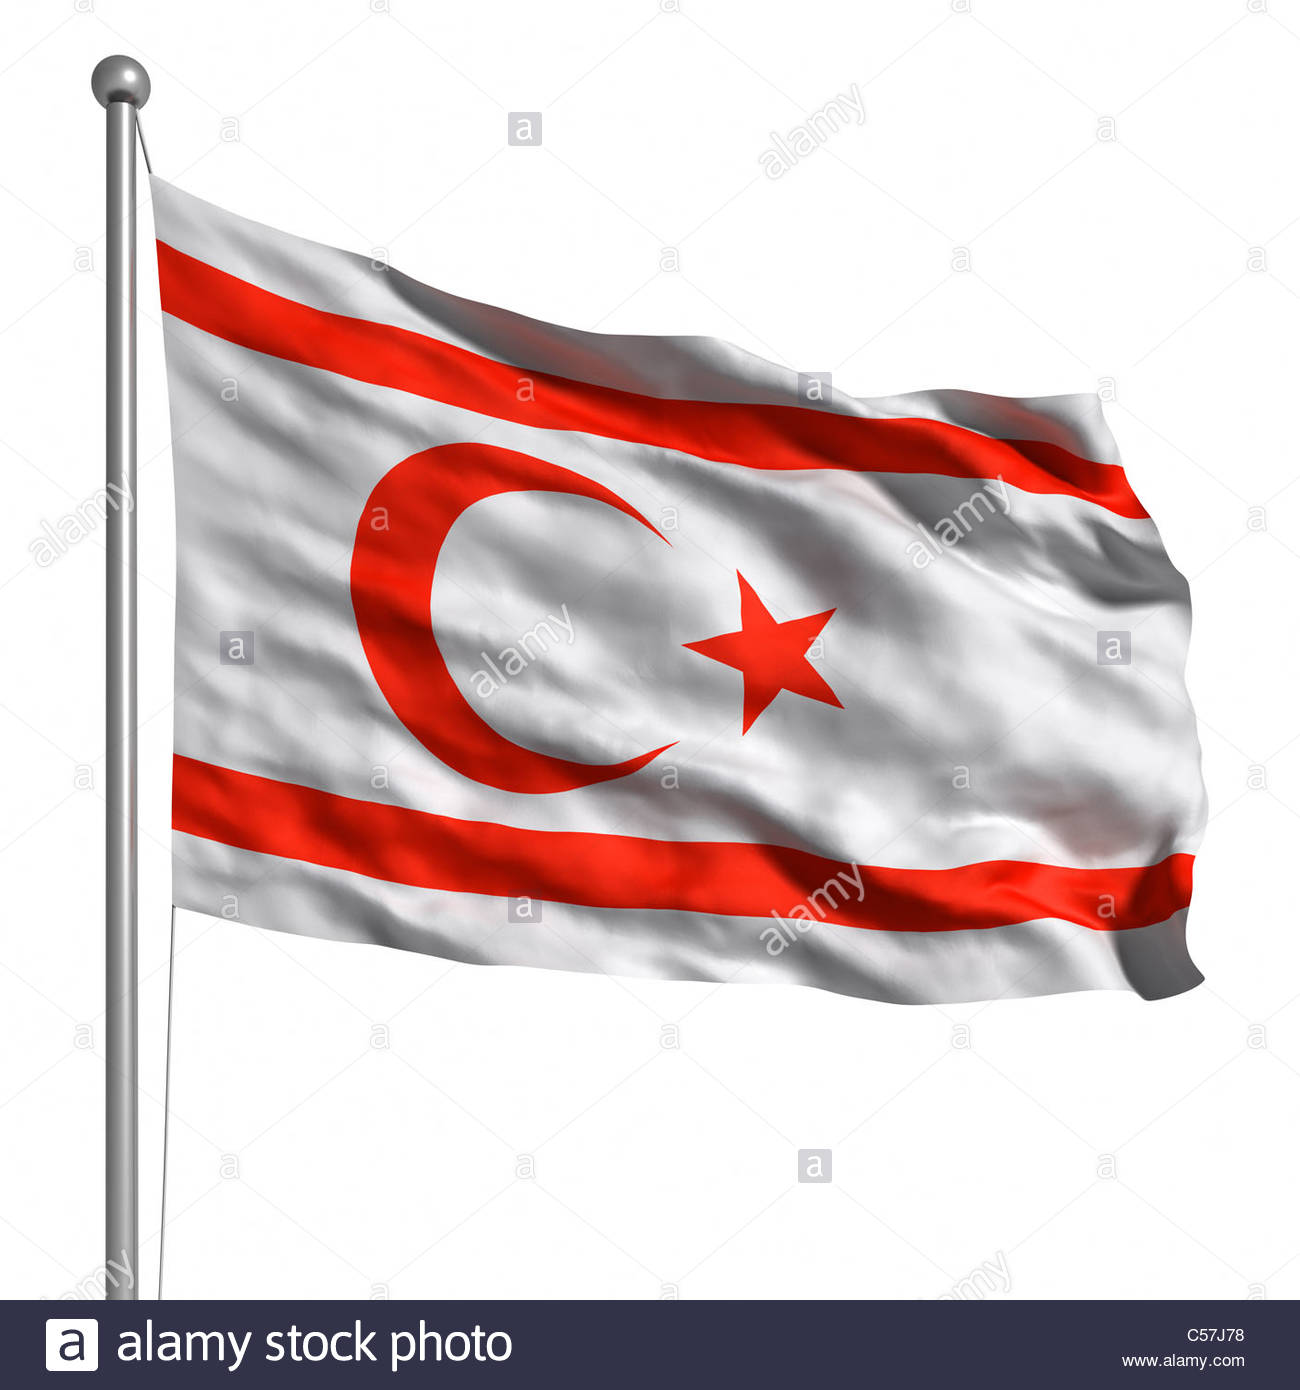 Flag Of Northern Cyprus. Rendered with fabric texture (visible at 100%). Clipping path included. - Stock Image